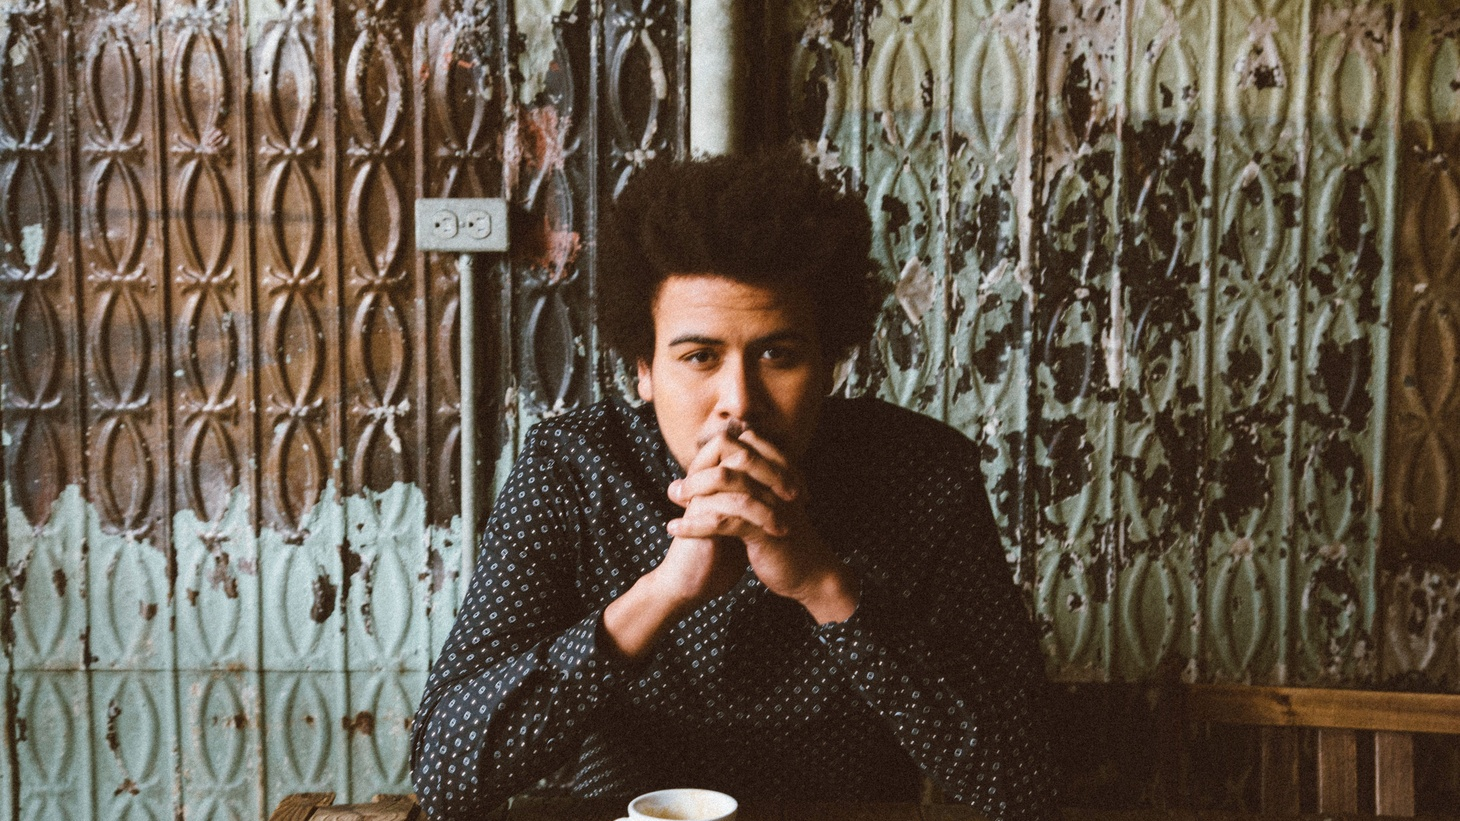 The debut album from the new UK singer Liam Bailey is a sonic stew filled with soul, blues and dub.